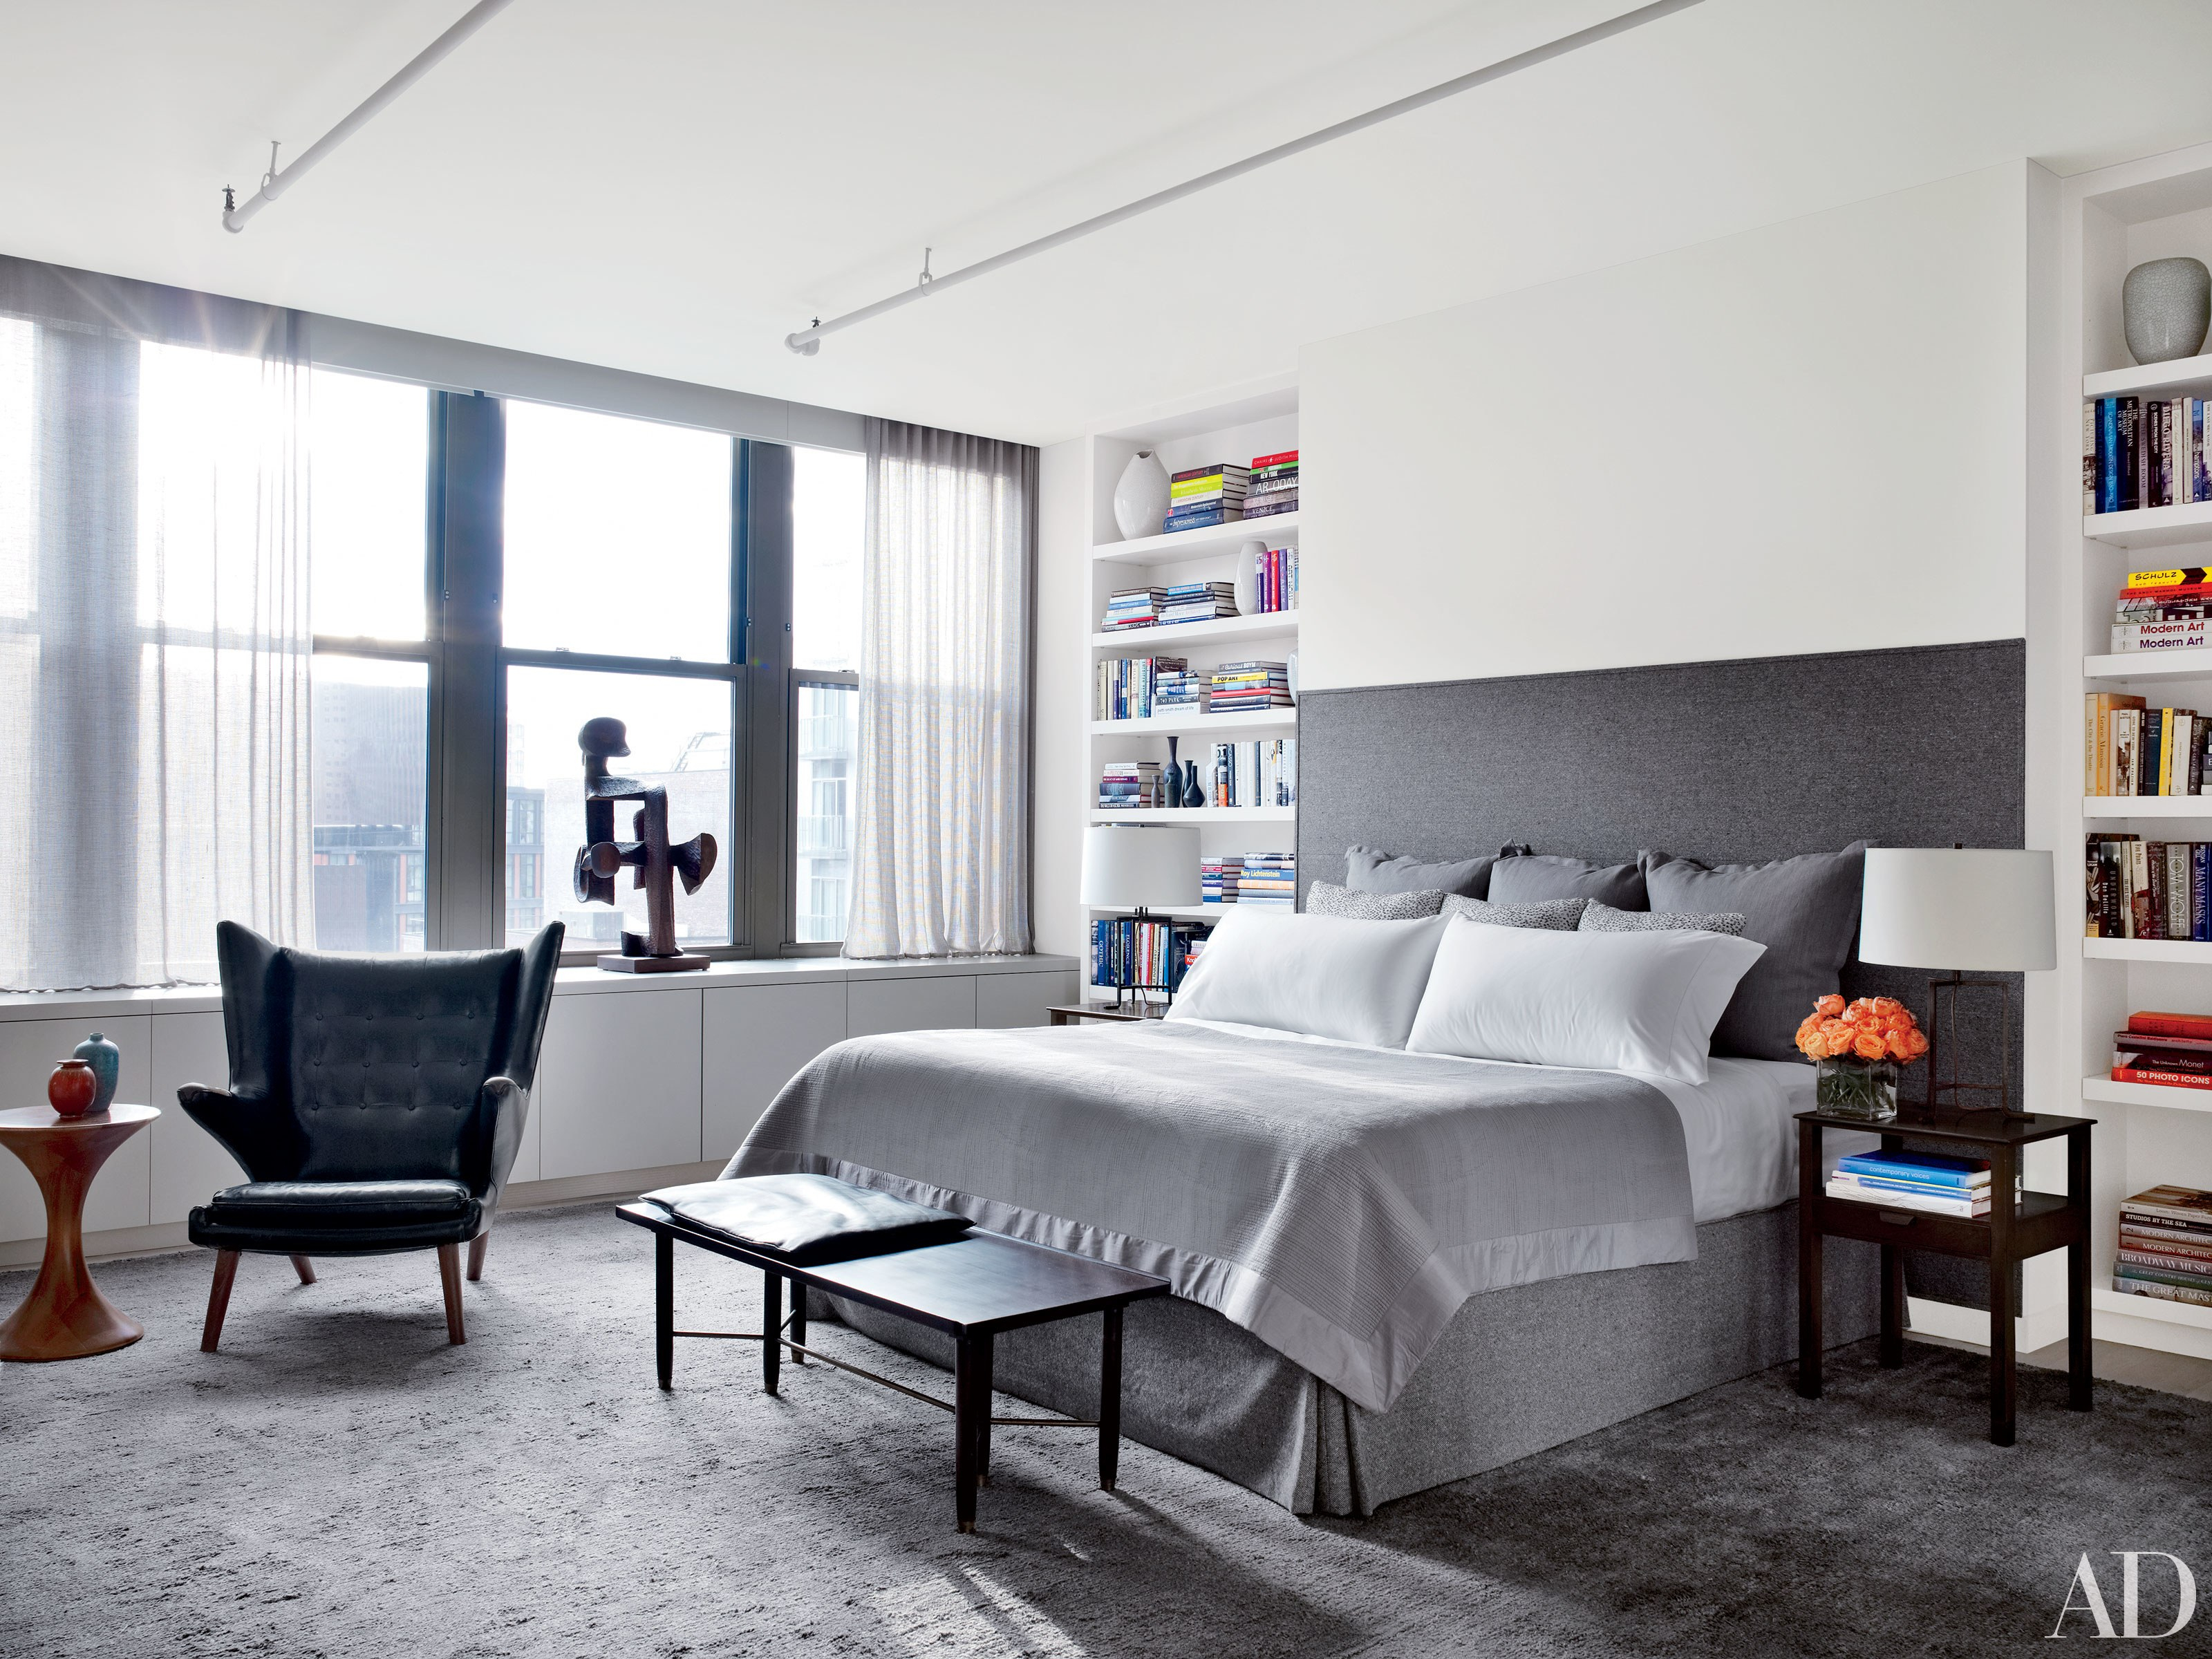 24 Contemporary Bedrooms With Sleek And Serene Style with 13 Clever Concepts of How to Make Modern Bedroom Pictures